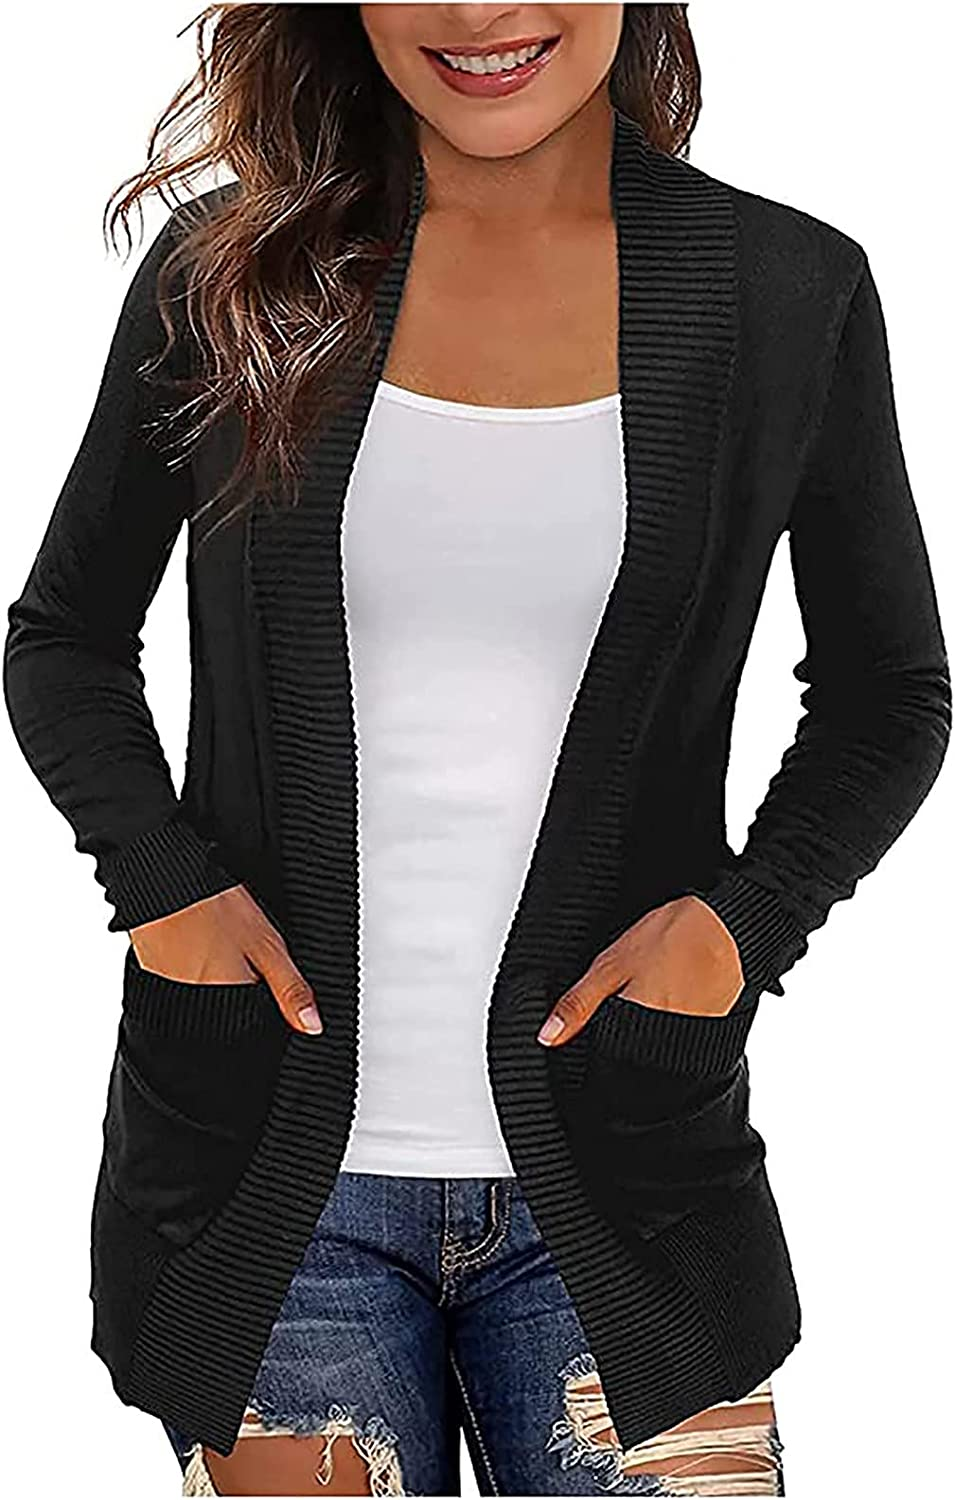 GOTD Women's Long Sleeve Hoodies Sweaters Open Front Cardigan Sweater with Pockets